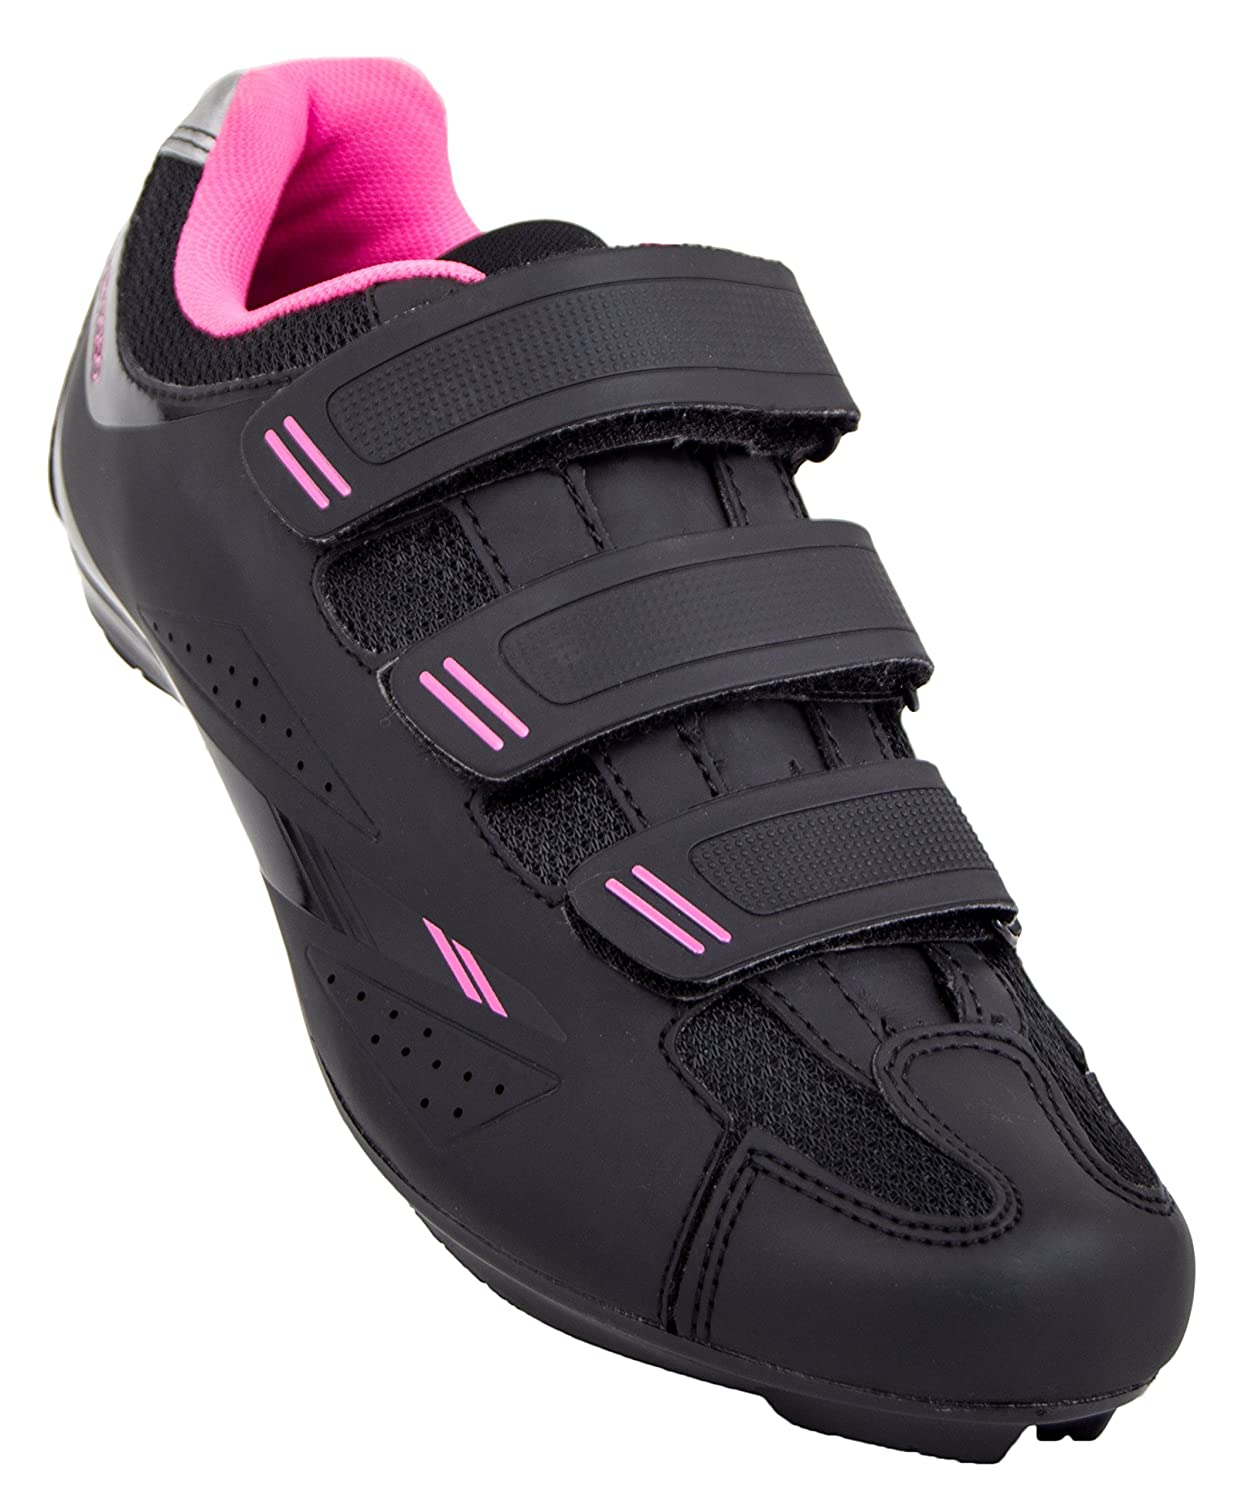 Tommaso Pista Women's Road Bike Cycling Spin Shoe Dual Cleat Compatibility B072BW8X7K 38 EU/ 7.5 US W|Black/Pink